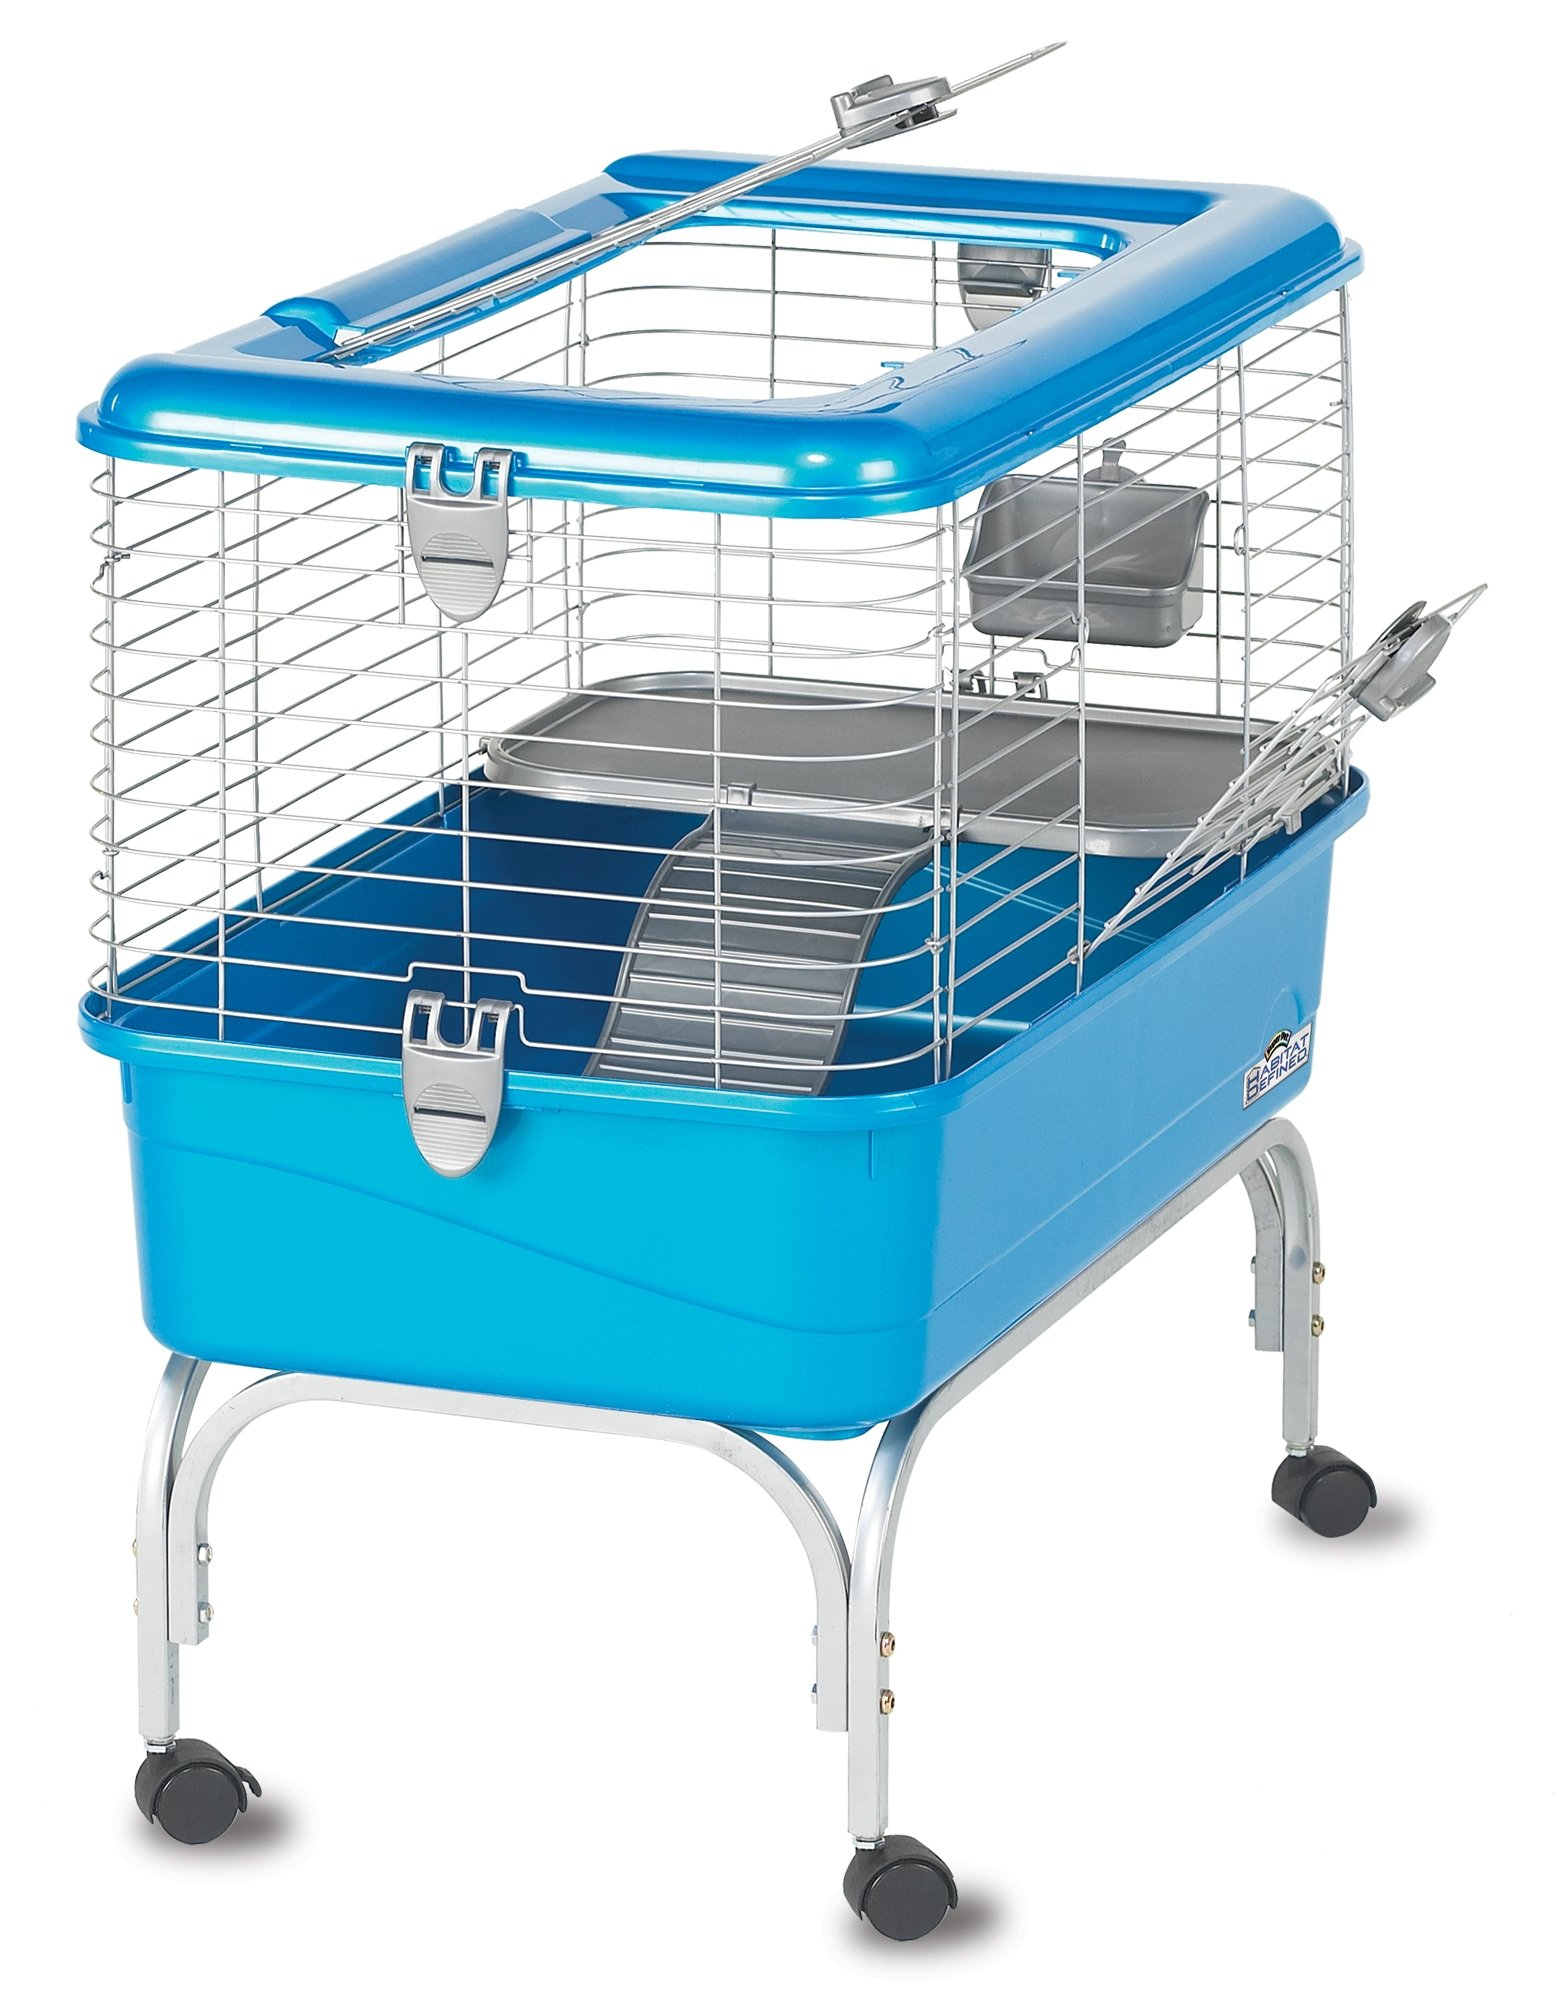 Kaytee Large Guinea Pig Habitat, 30.25'' x 18'' x 20.25'' (29.25'' with stand)